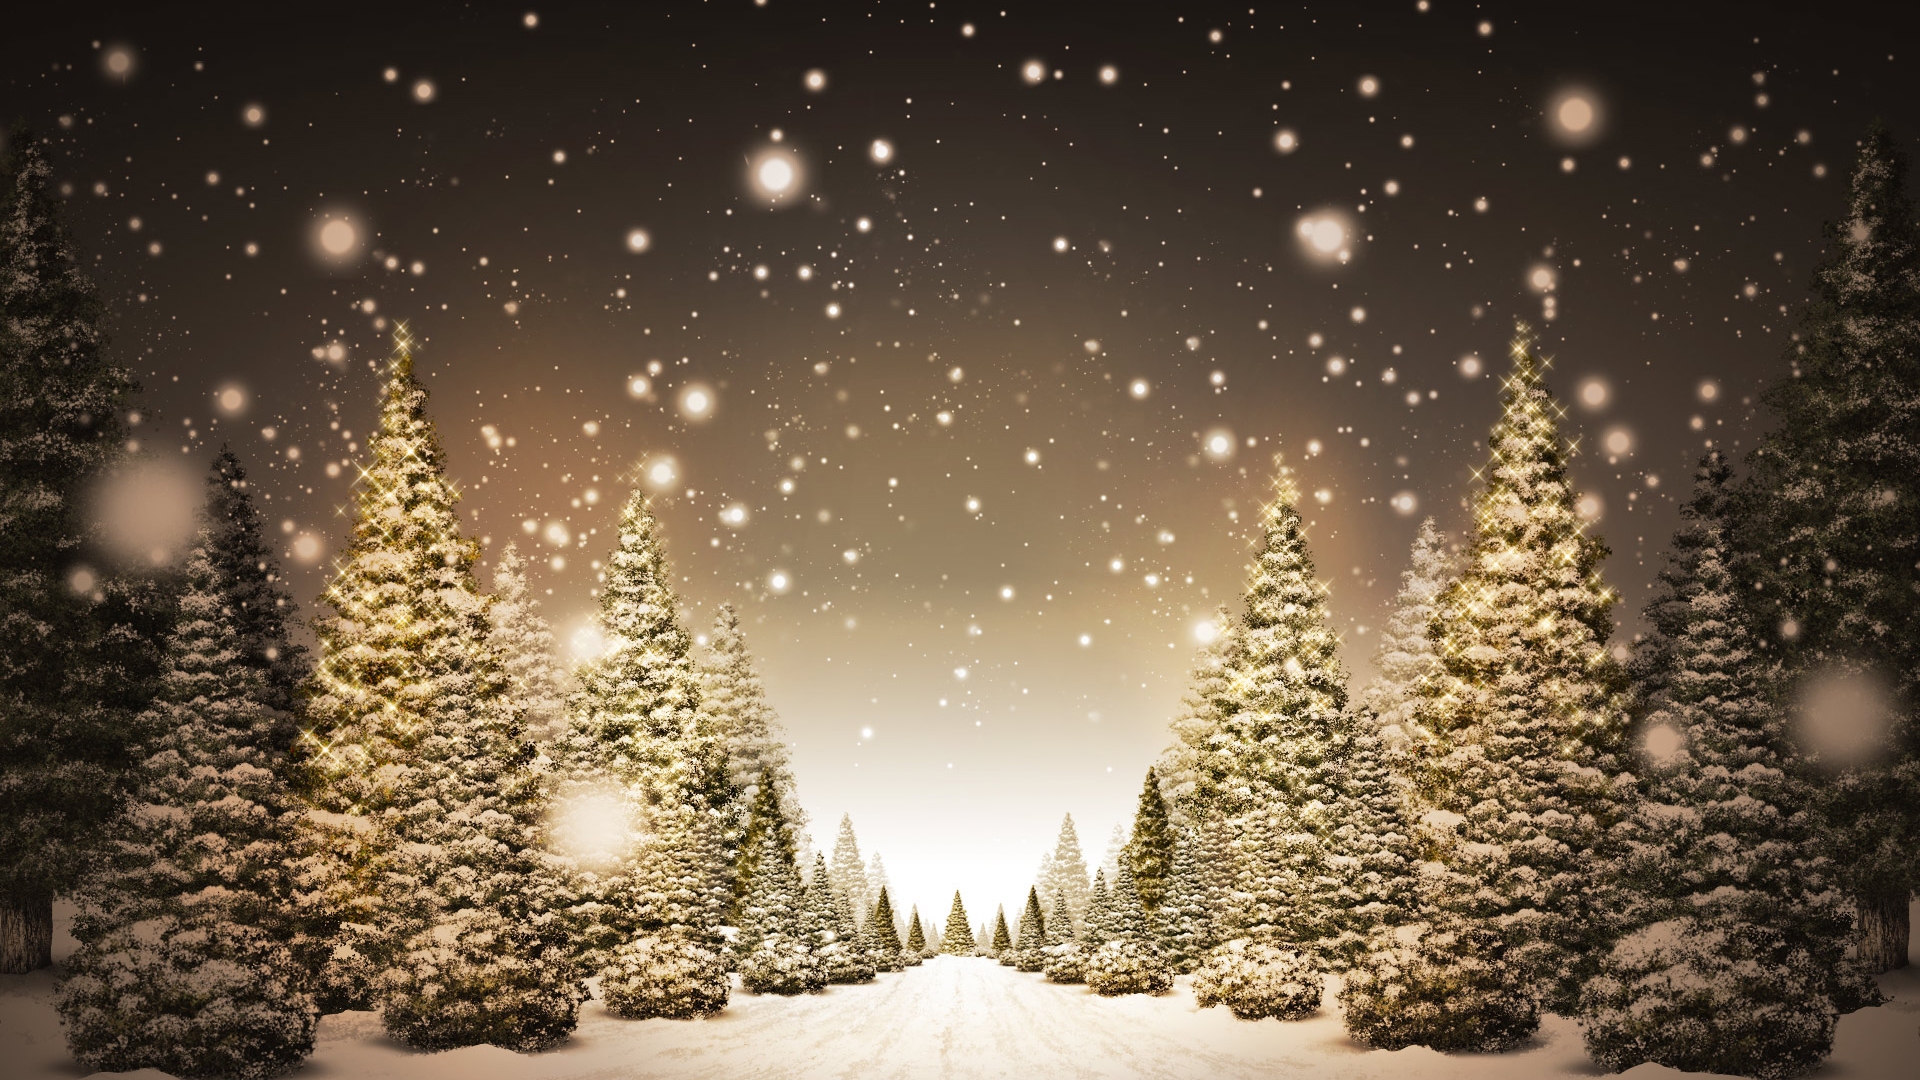 Christmas Trees in Snow HD Wallpaper » FullHDWpp - Full HD